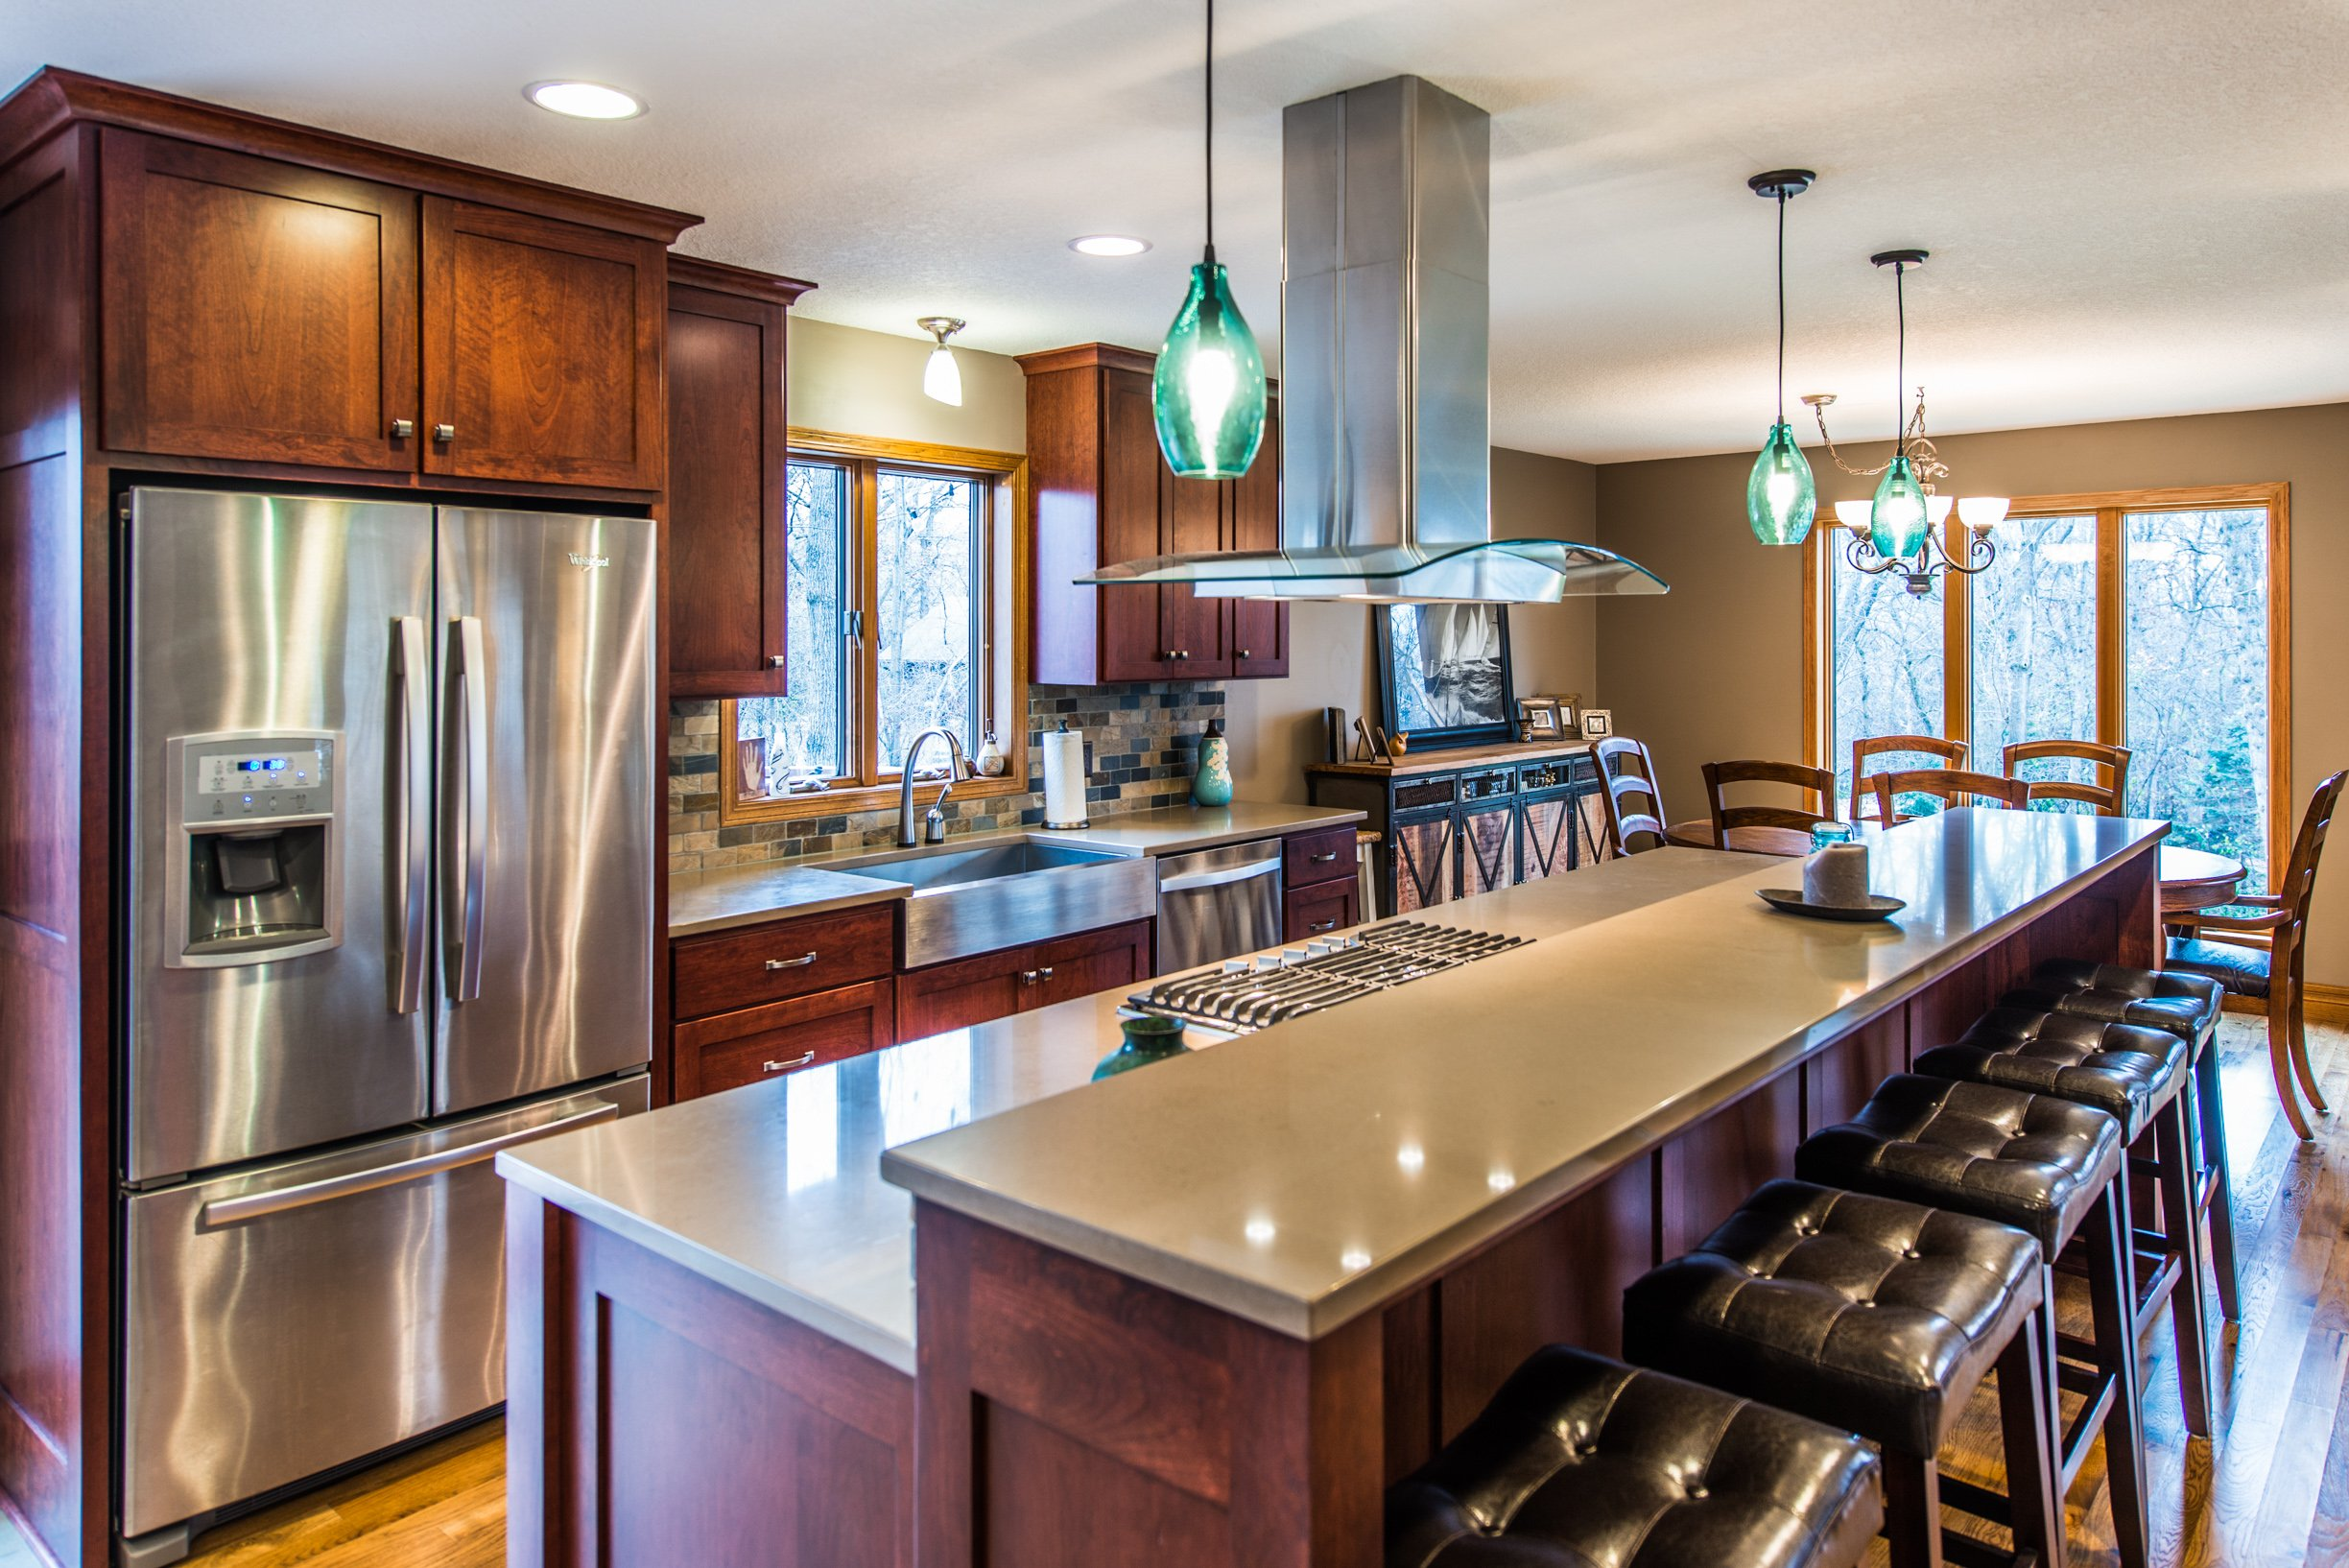 Kitchen Design Minneapolis Mn Kitchen Bath Home Remodel Design Minnesota